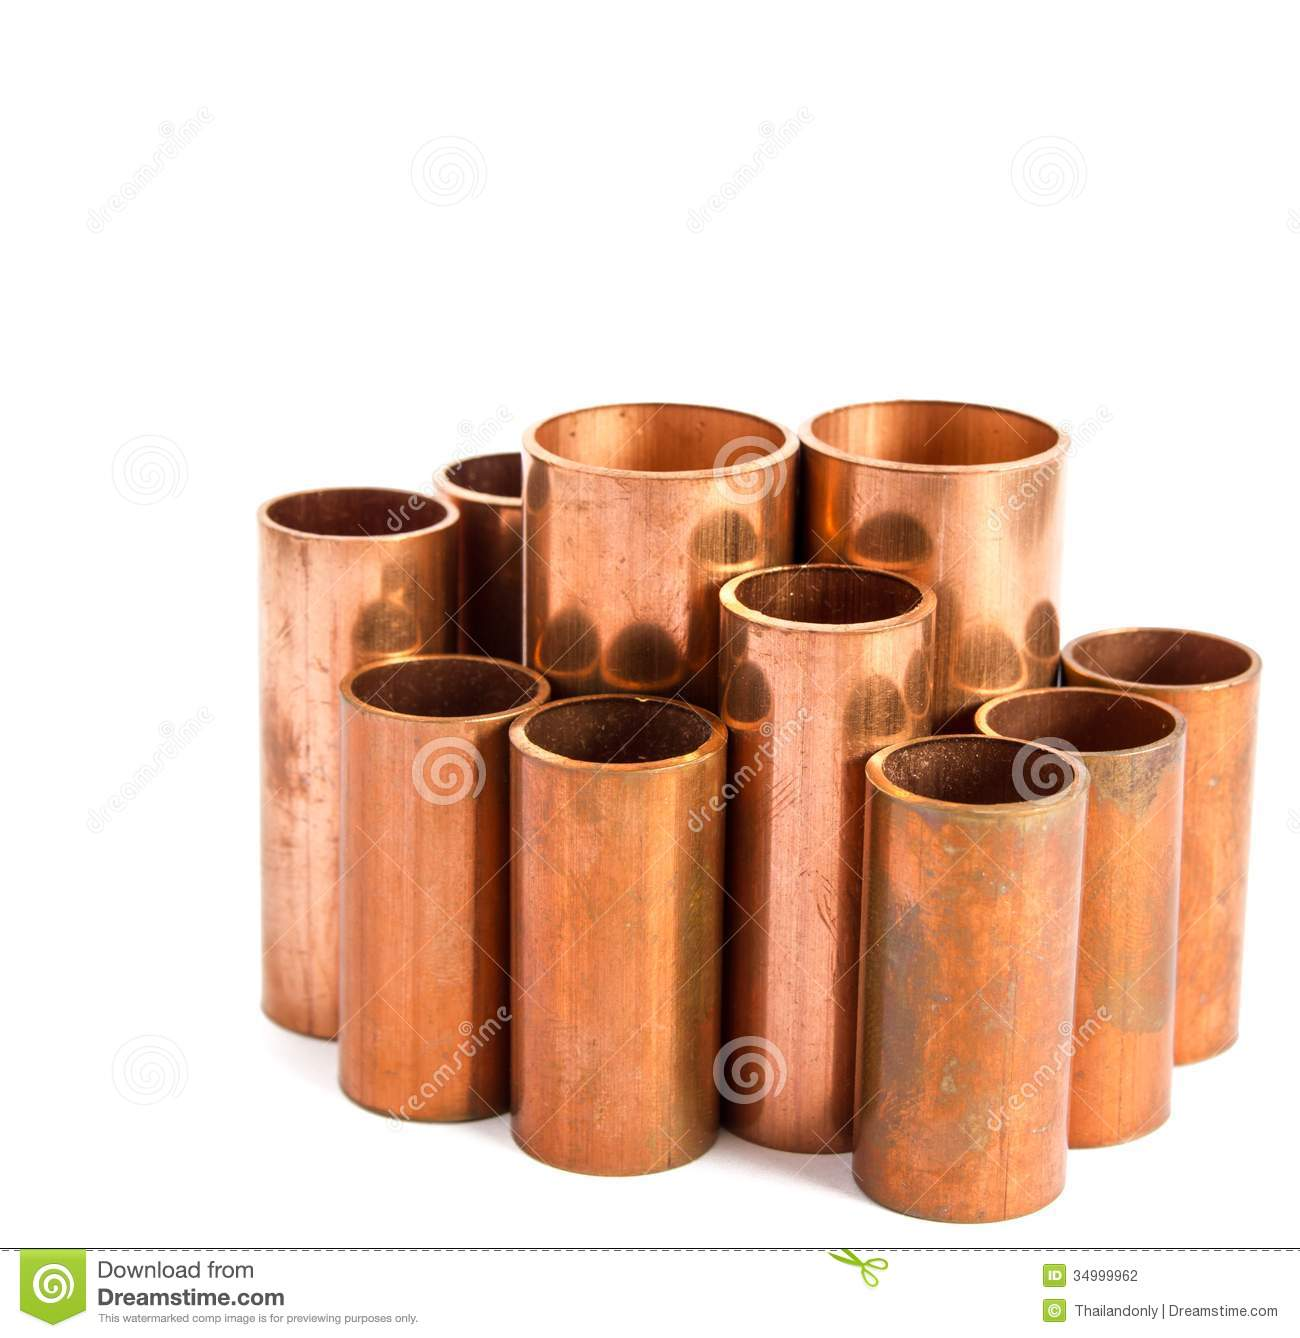 Copper pipe stock photography image 34999962 for Used copper pipe